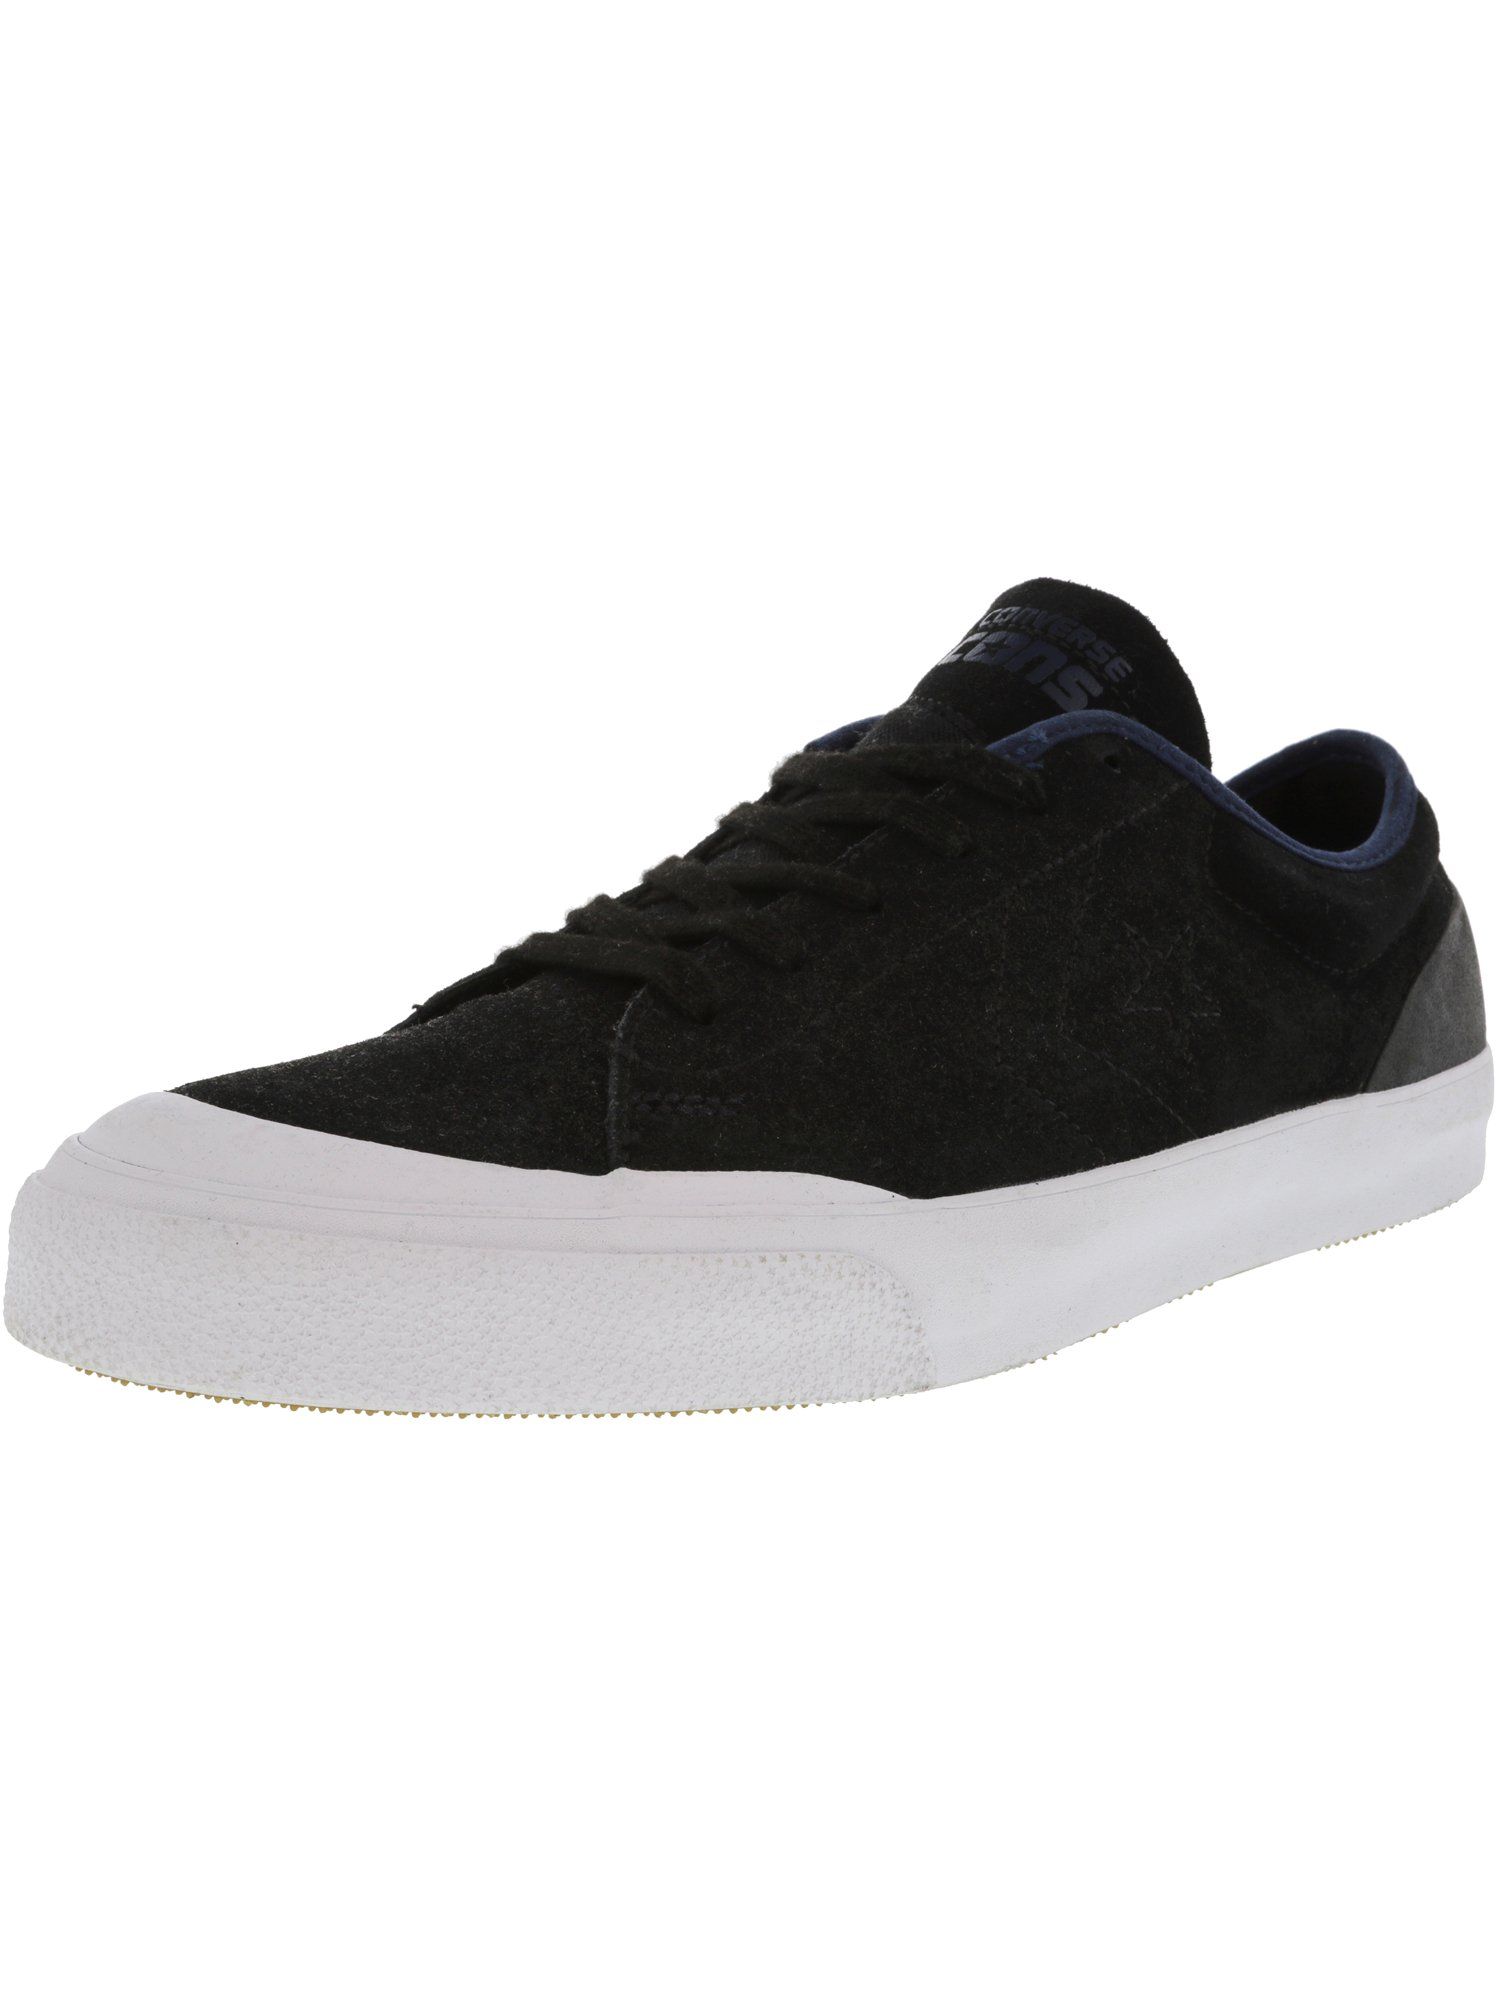 Converse Men s Cons Sumner Ox Black   Navy Ankle-High Leather ... 7ec18bac7